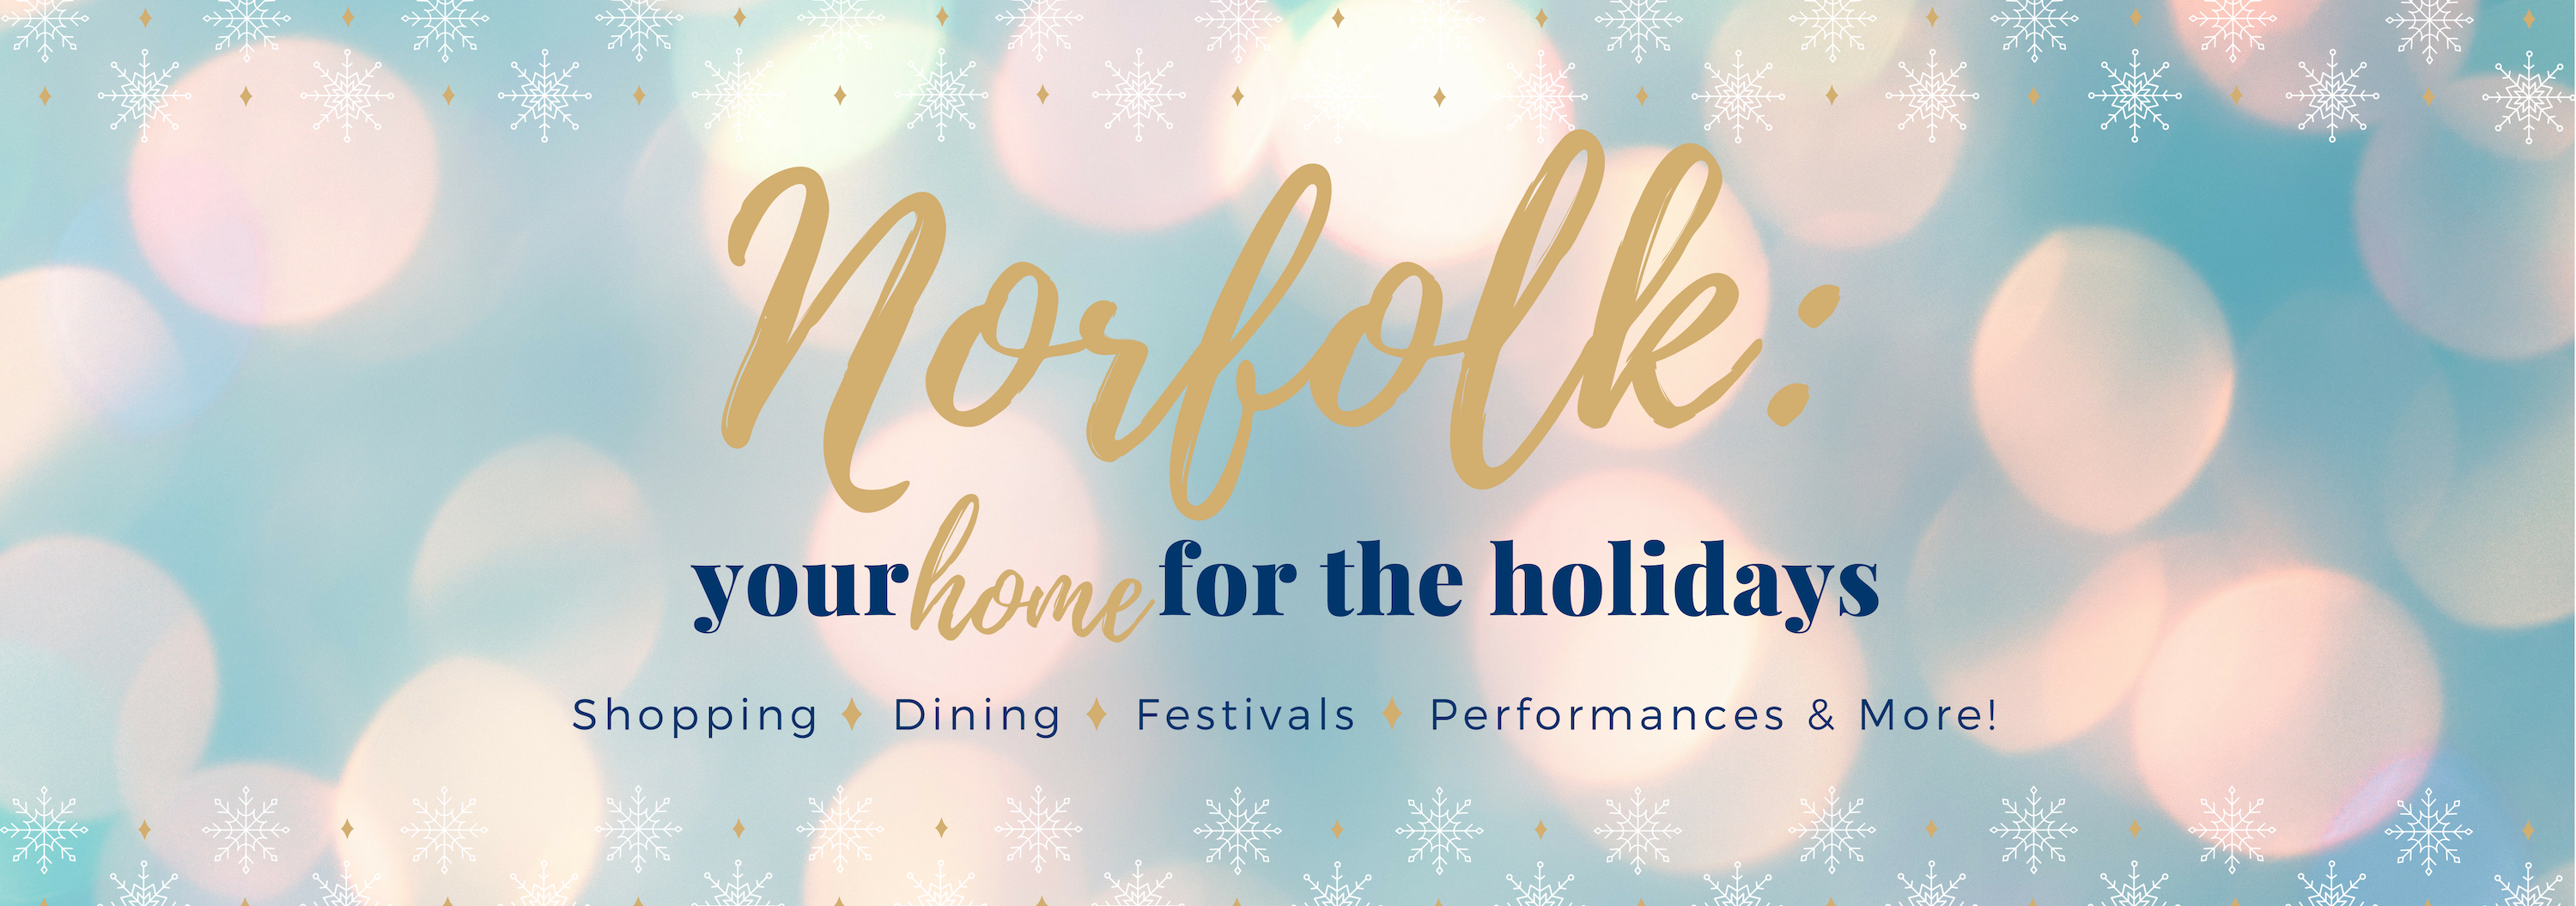 Norfolk: your home for the holidays image